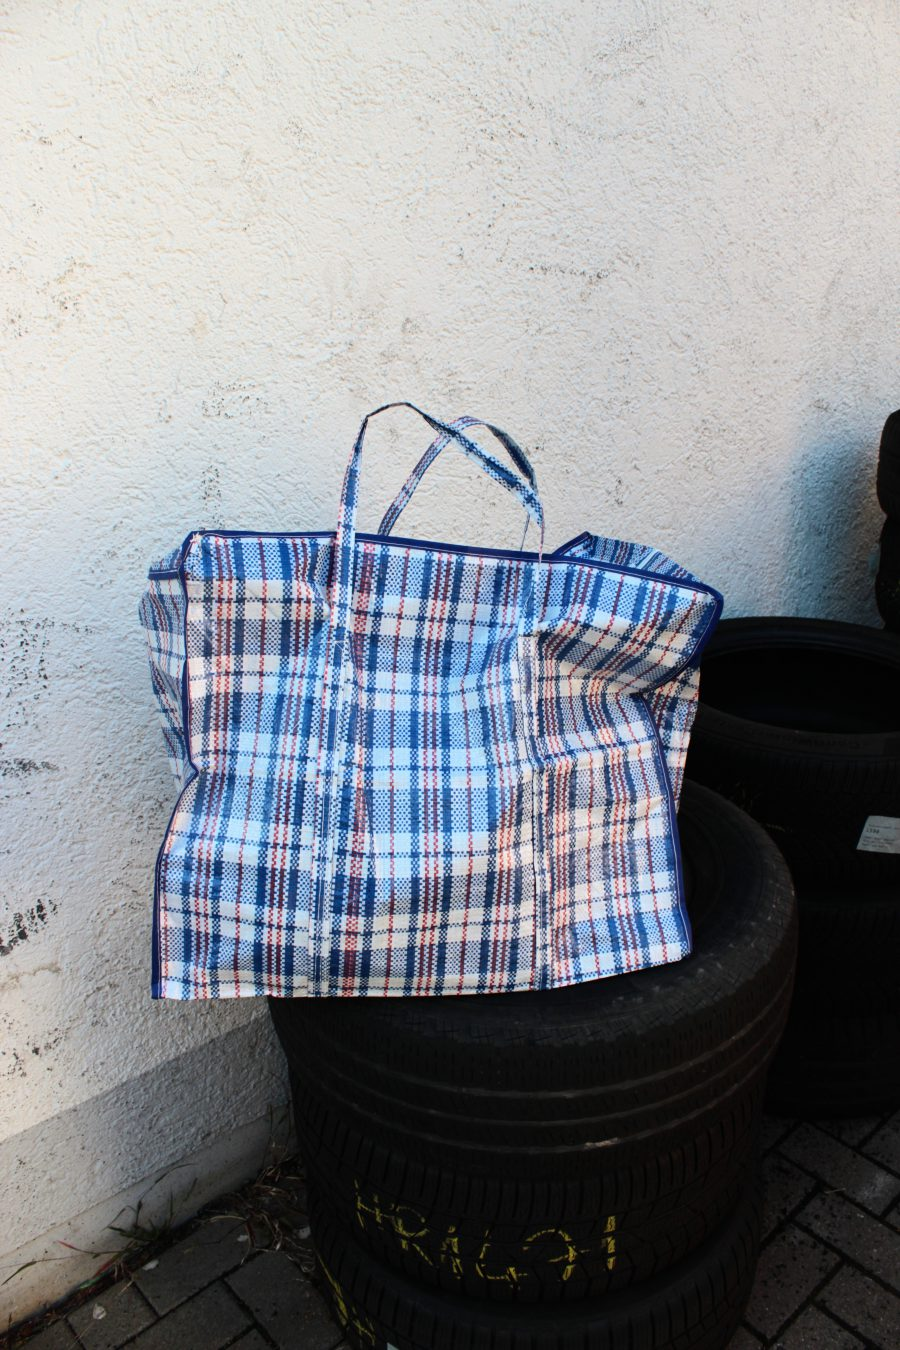 Big-Bazar-tote bag balenciaga